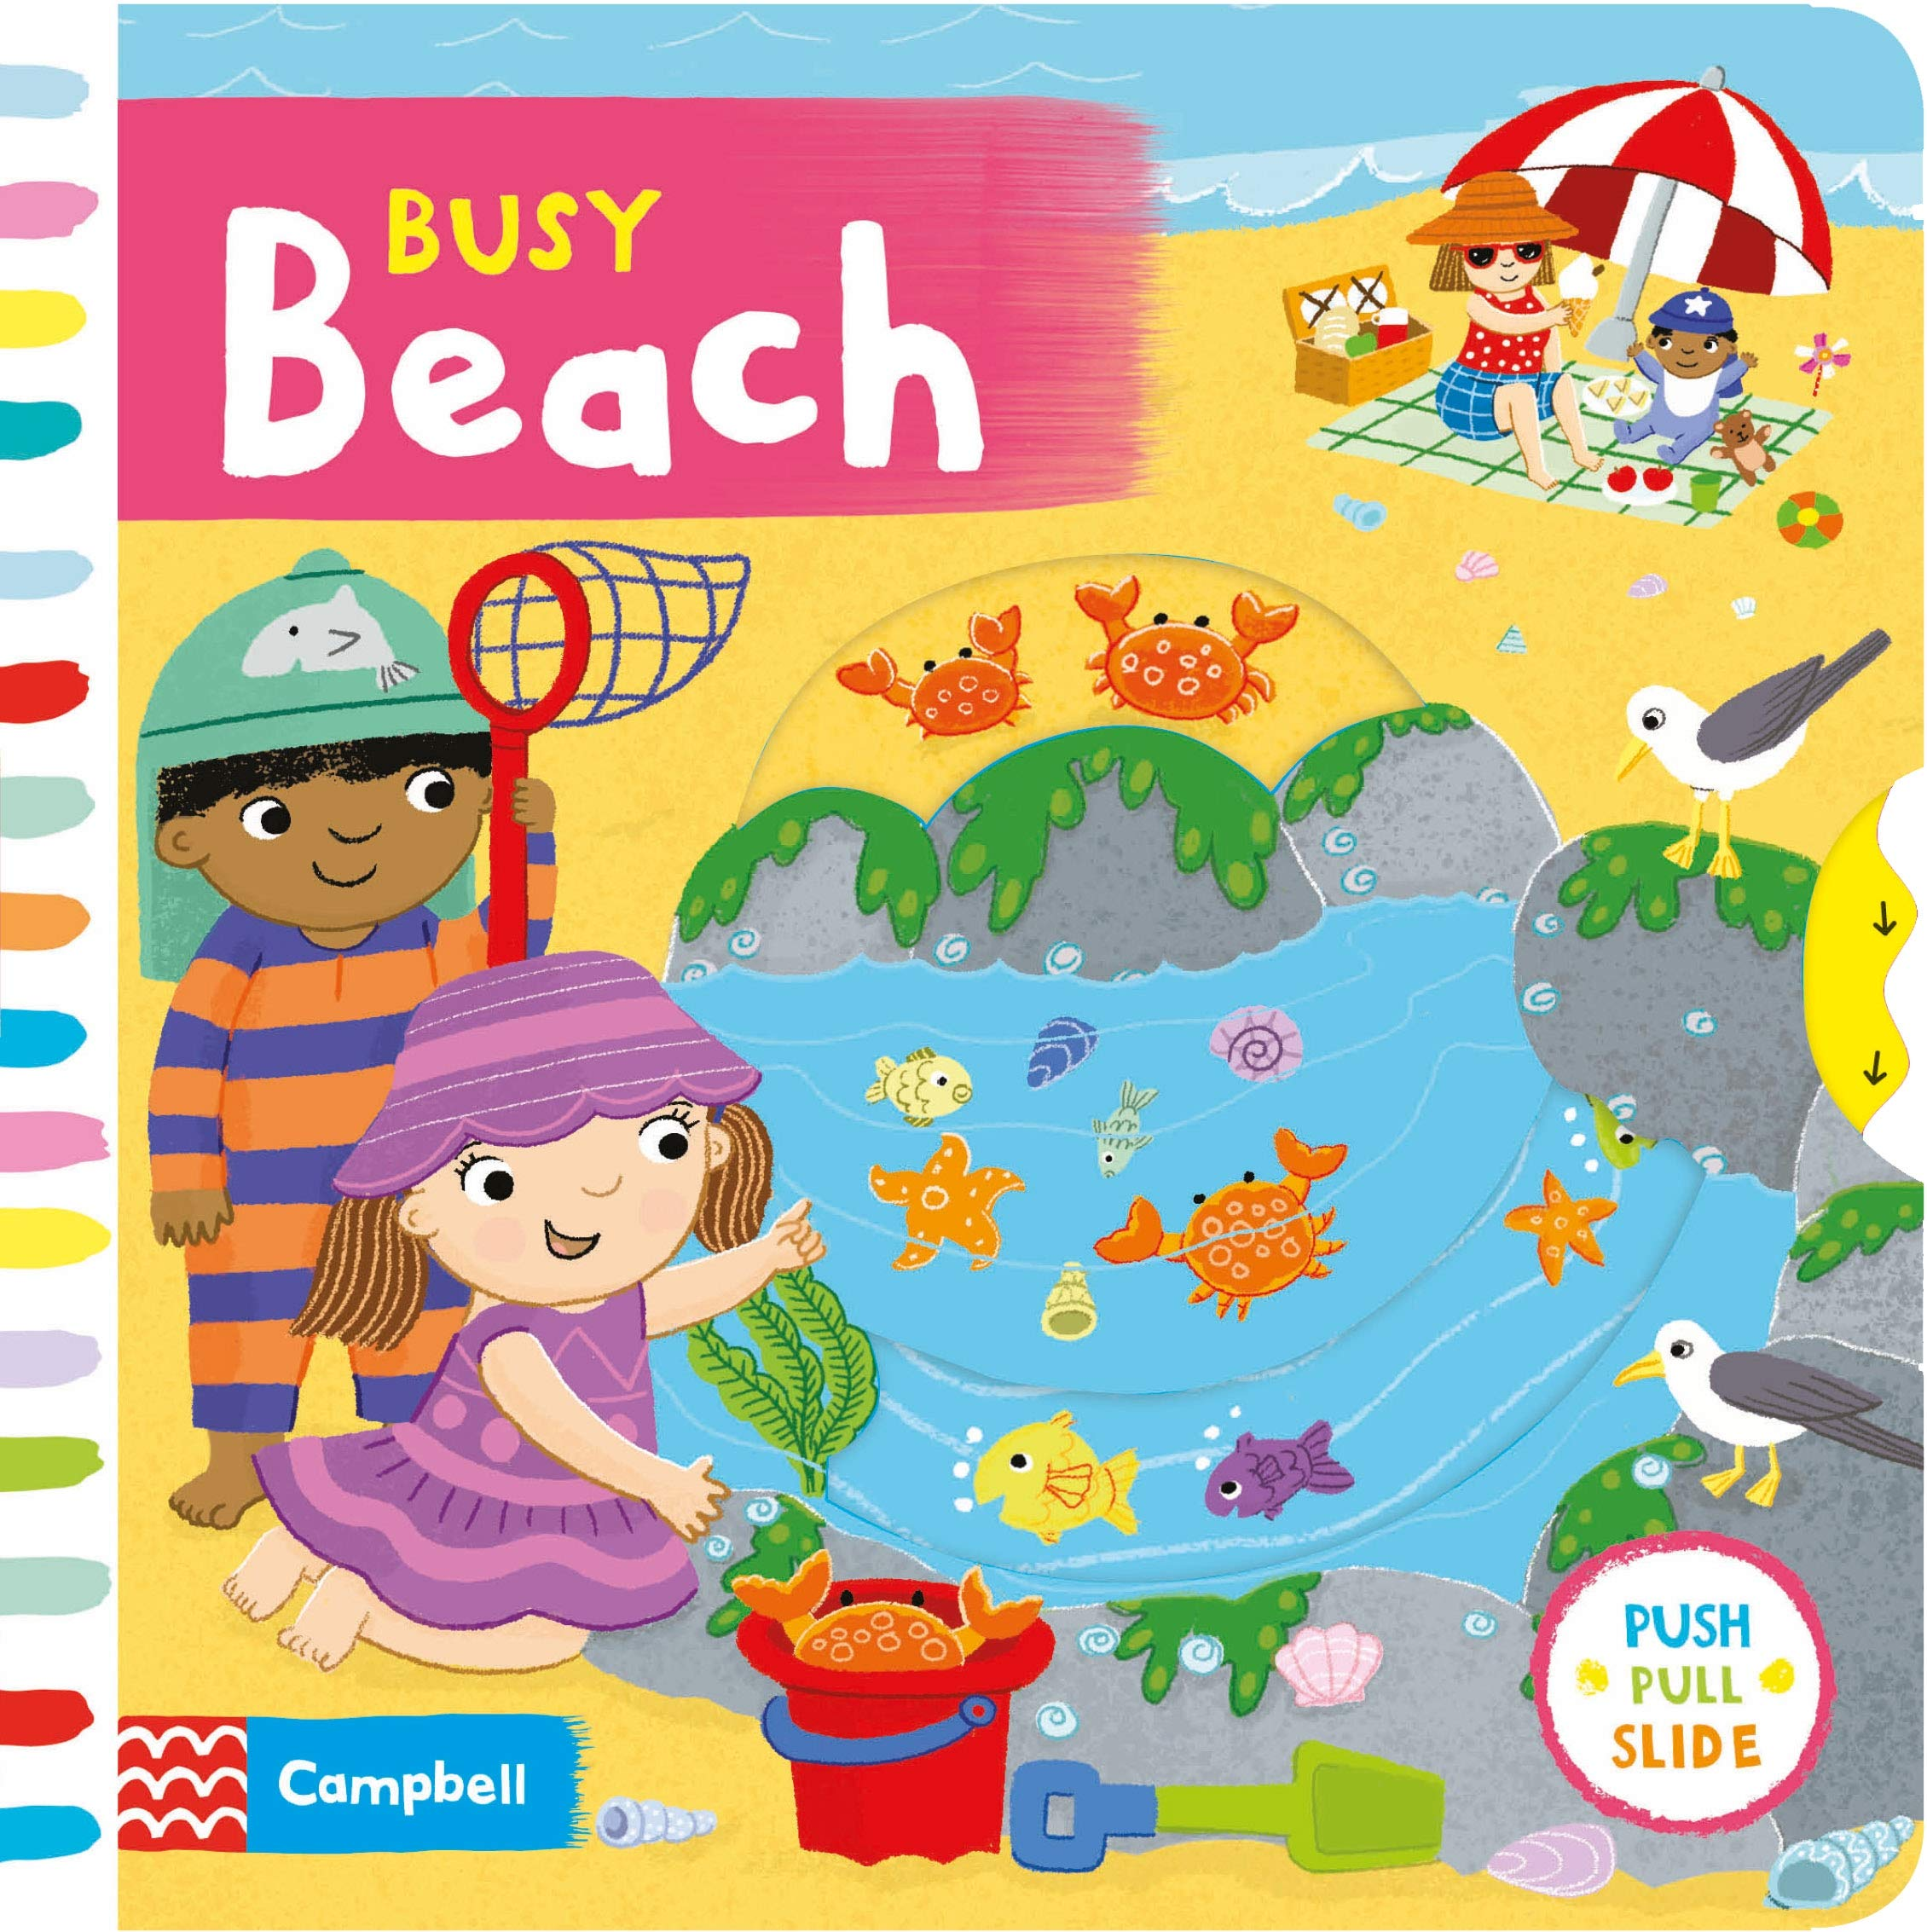 Busy Beach (Busy Books): Campbell Books: 9781529004175.